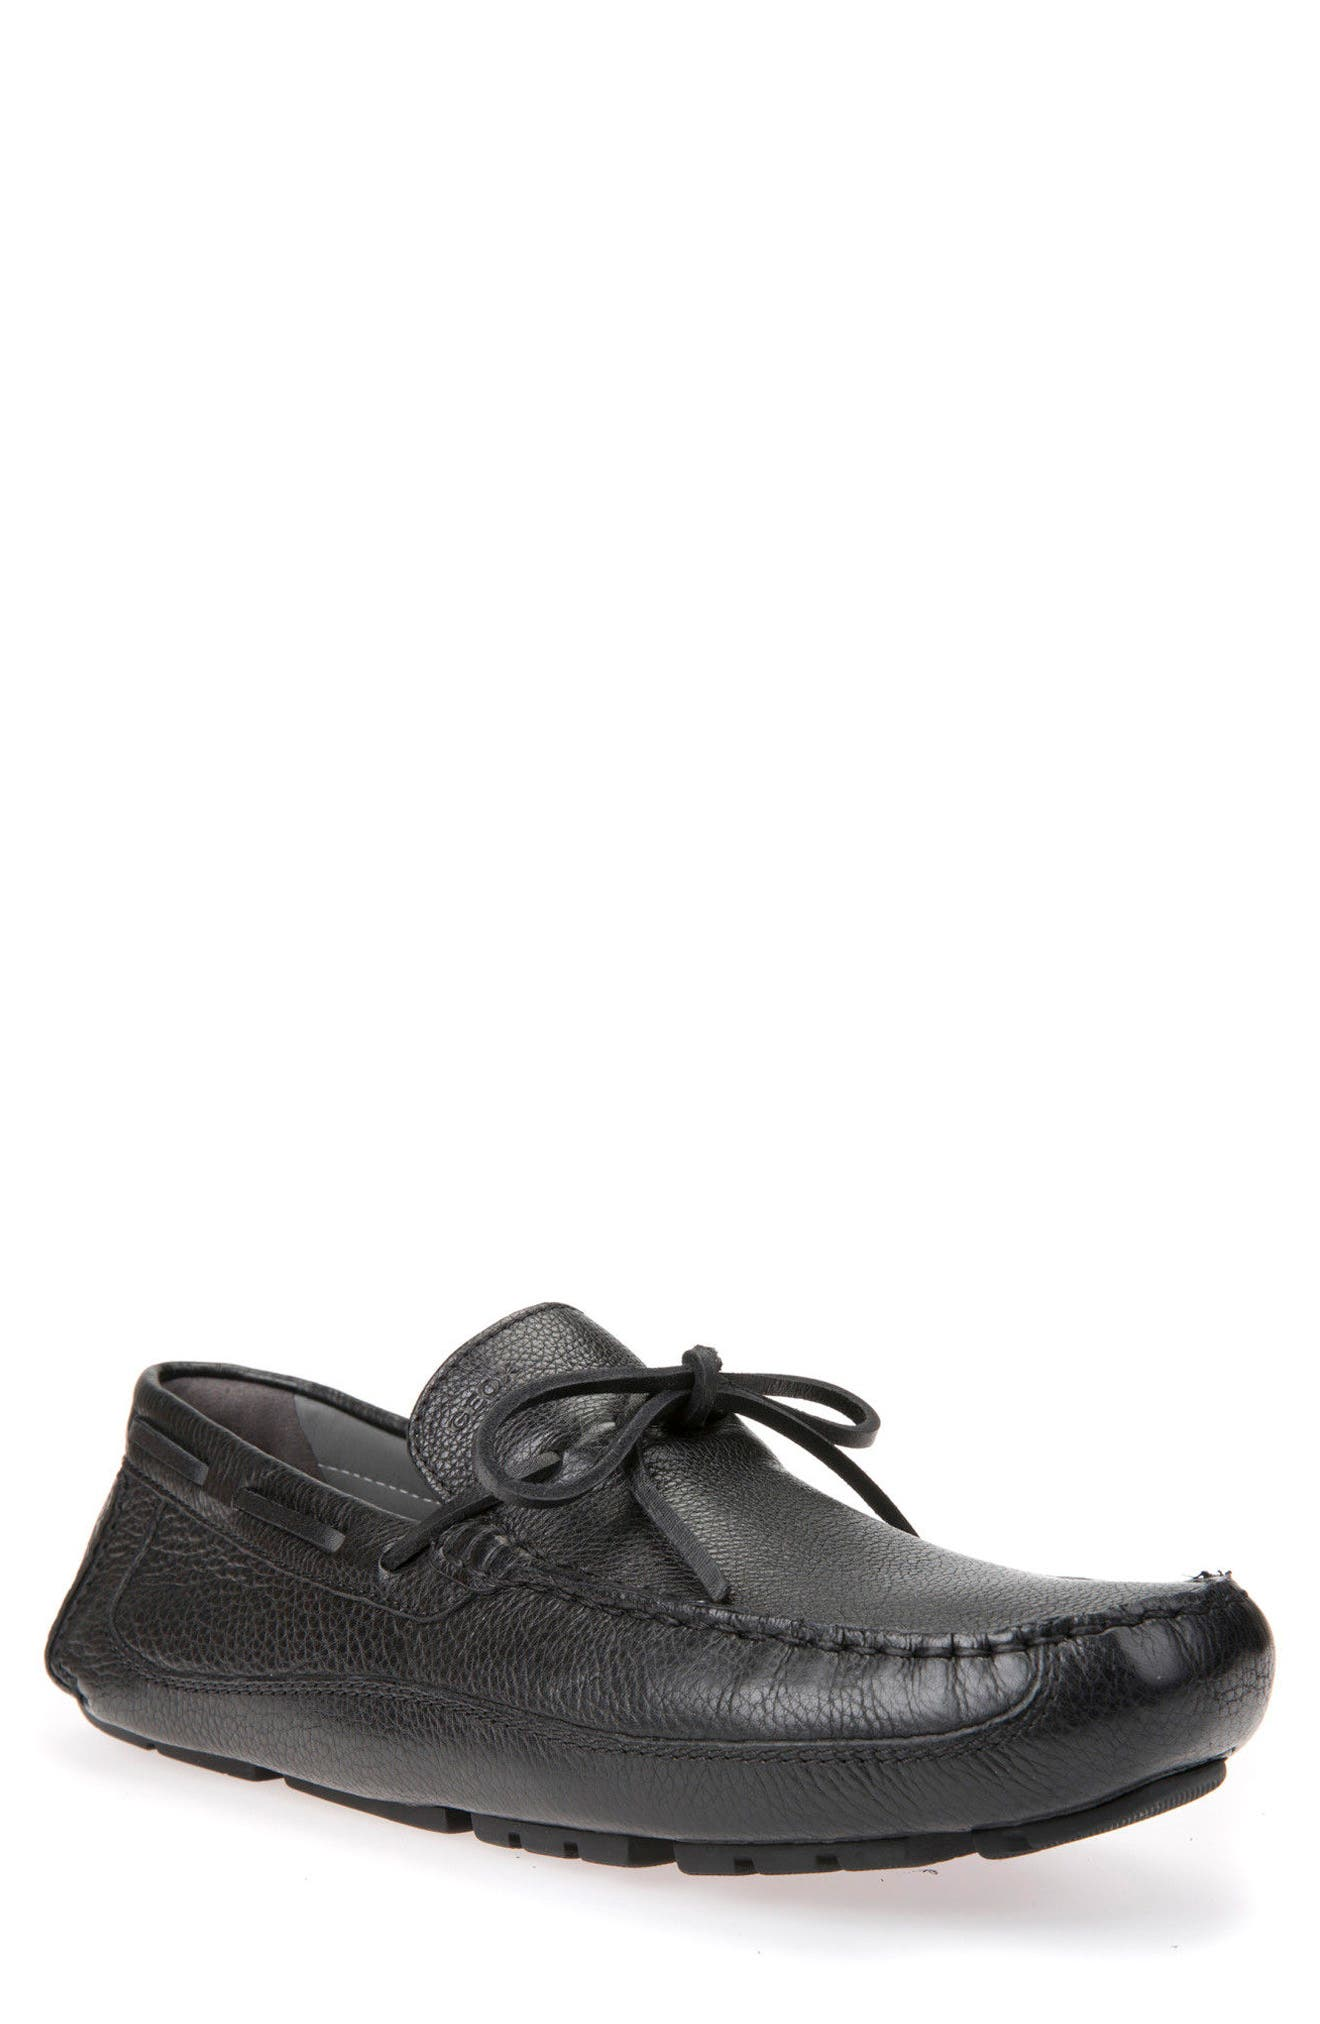 Melbourne 5 Driving Shoe,                             Main thumbnail 1, color,                             Black Leather